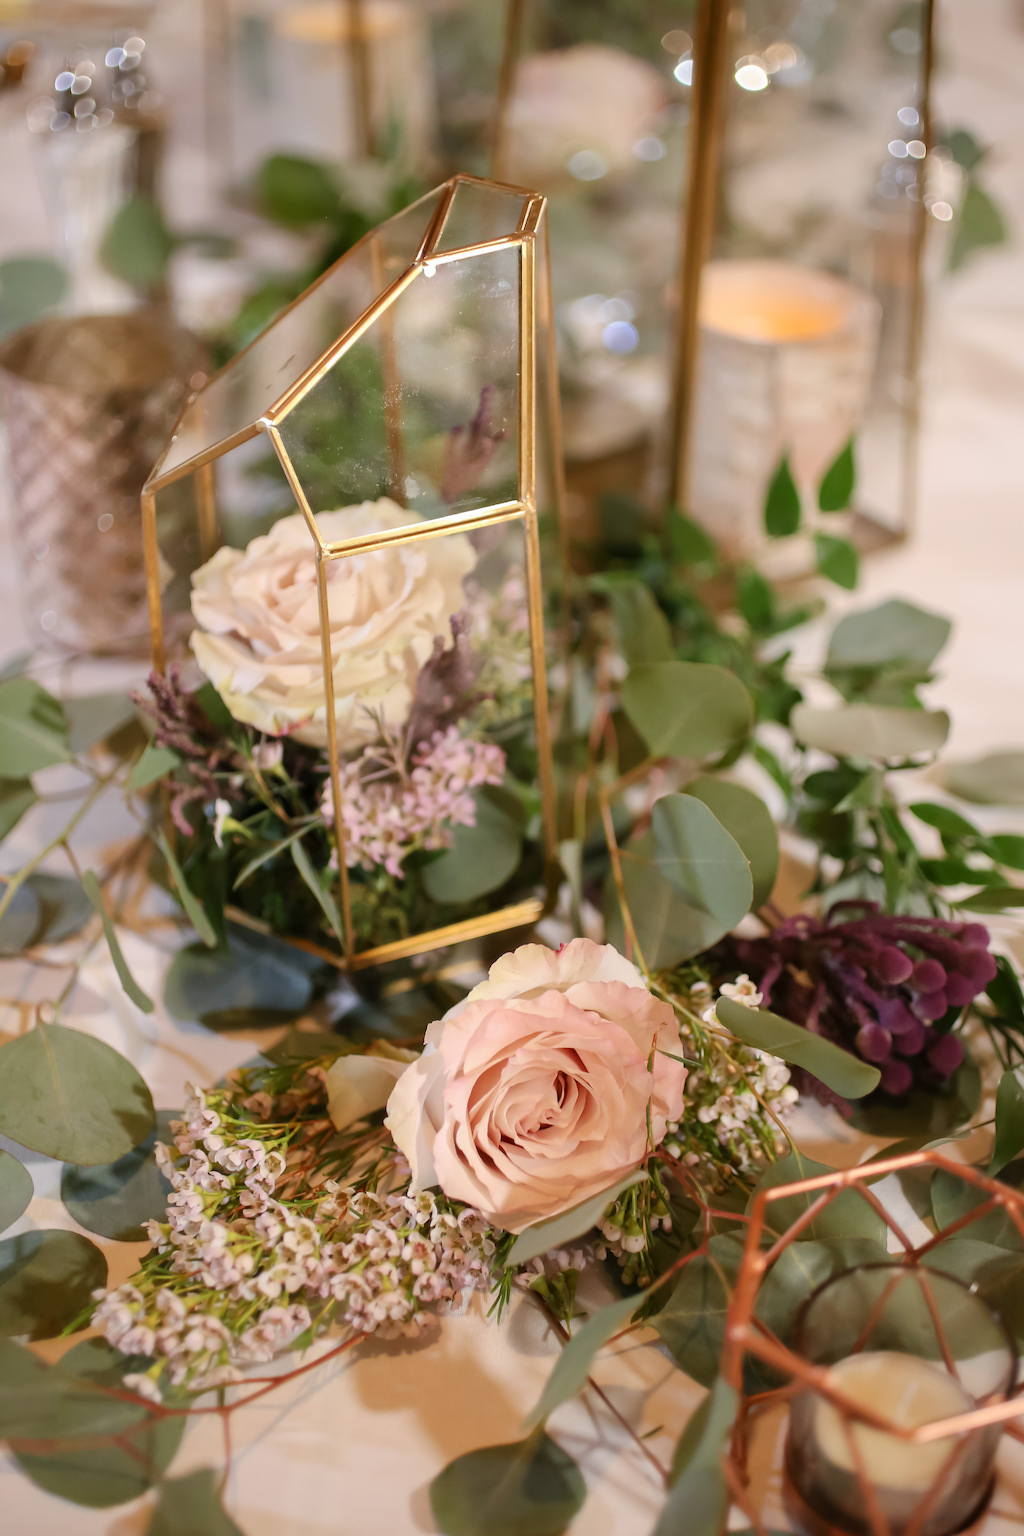 Romantic Garden Inspired Wedding Reception Decor, Gold Geometric Vases with Ivory, Greenery and Purple Flowers   Tampa Bay Wedding Photographer Lifelong Photography Studios   Wedding Planner Special Moments Event Planning